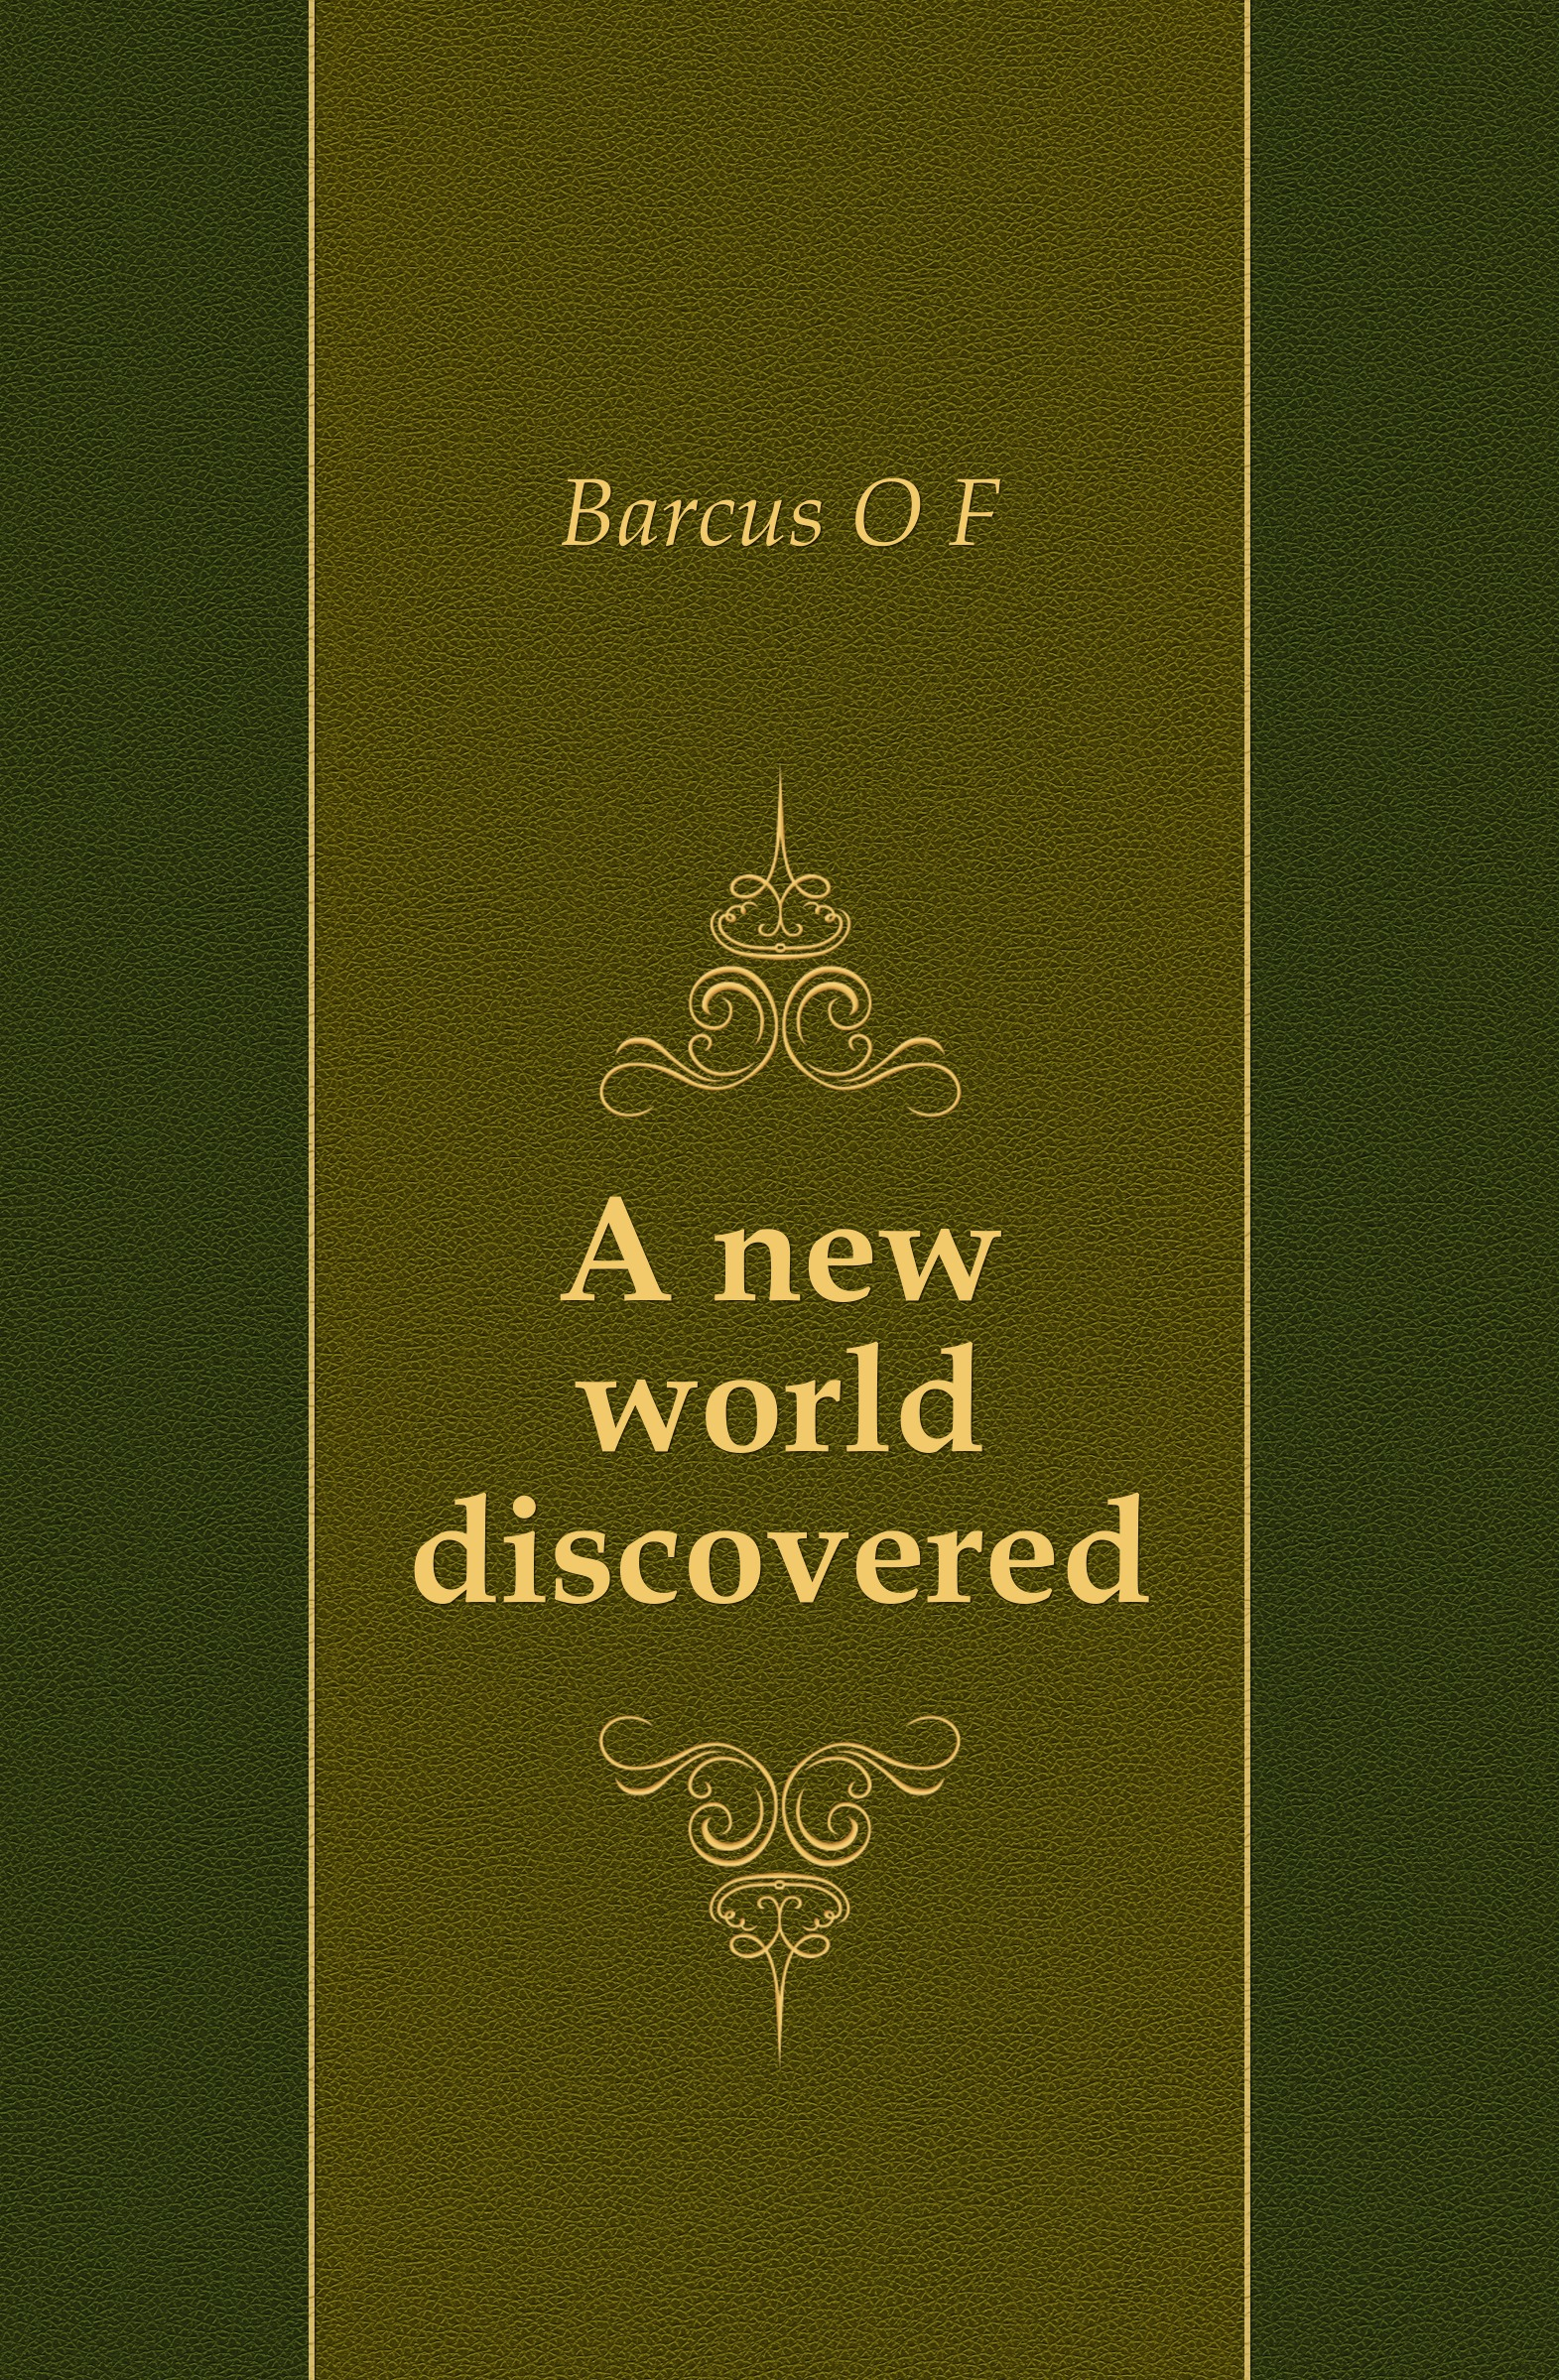 O. F. Barcus A new world discovered